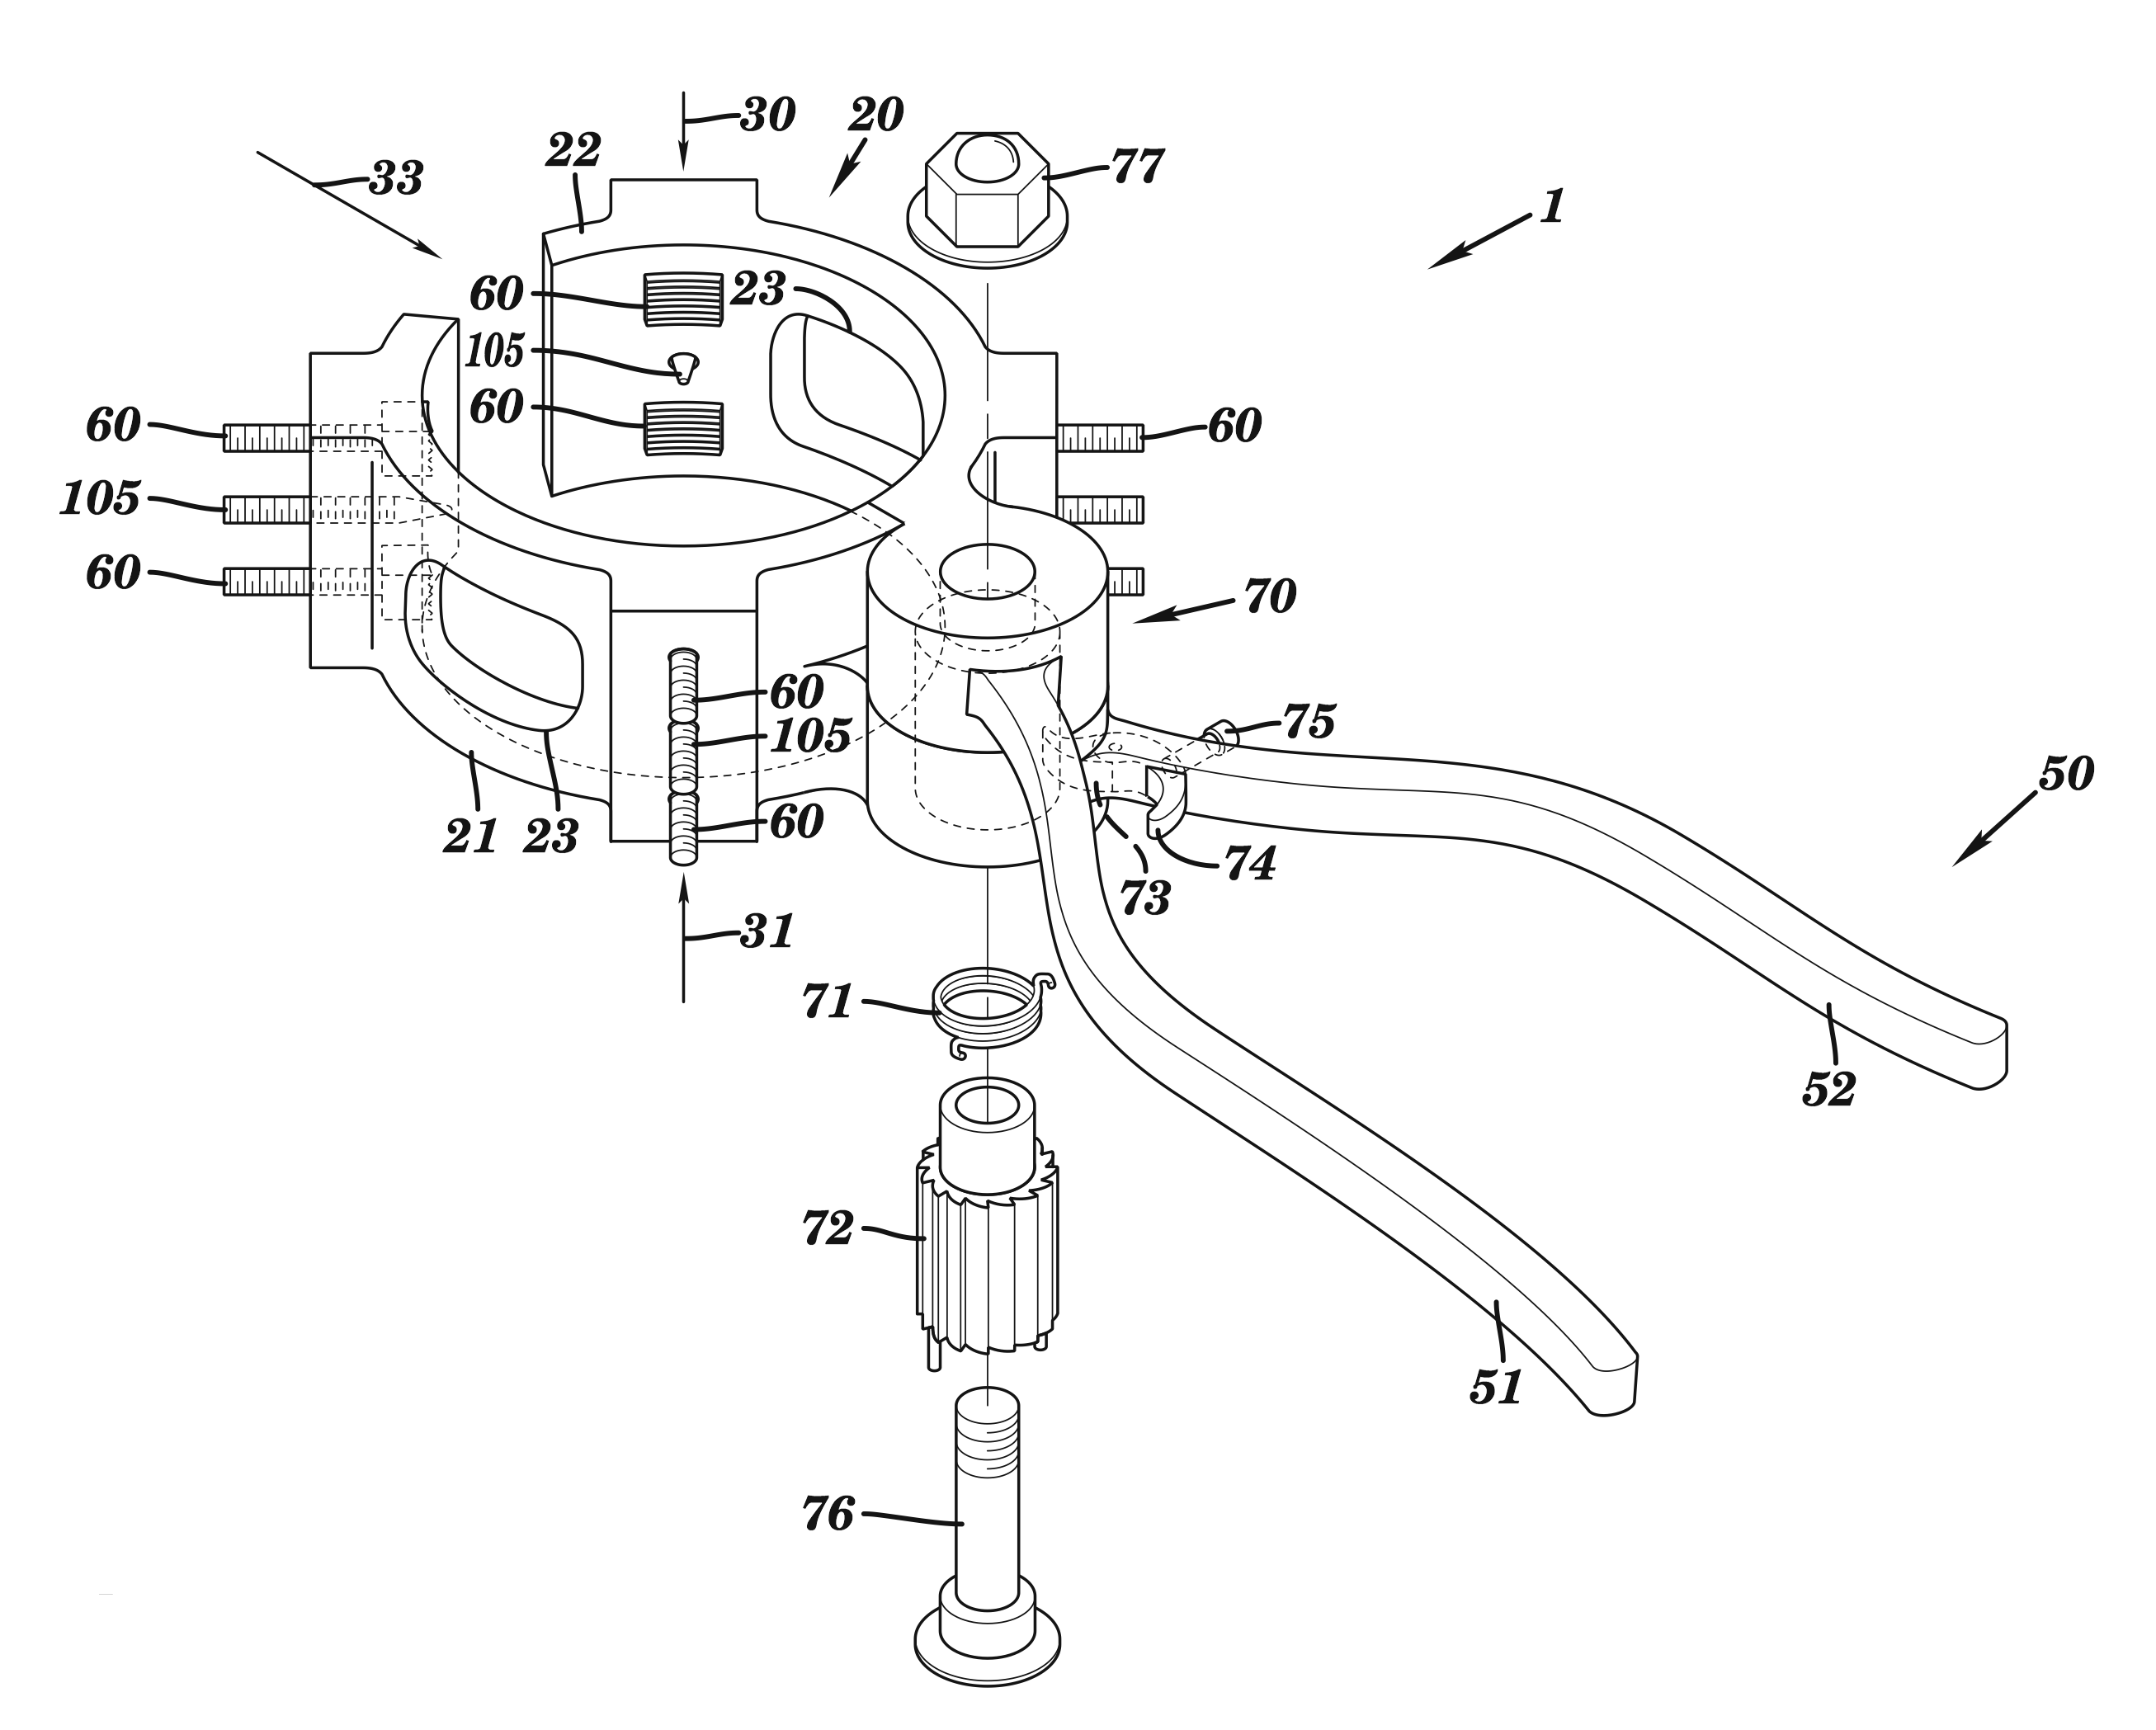 24_ptiserviceco_patent_drawing_mechanical.png